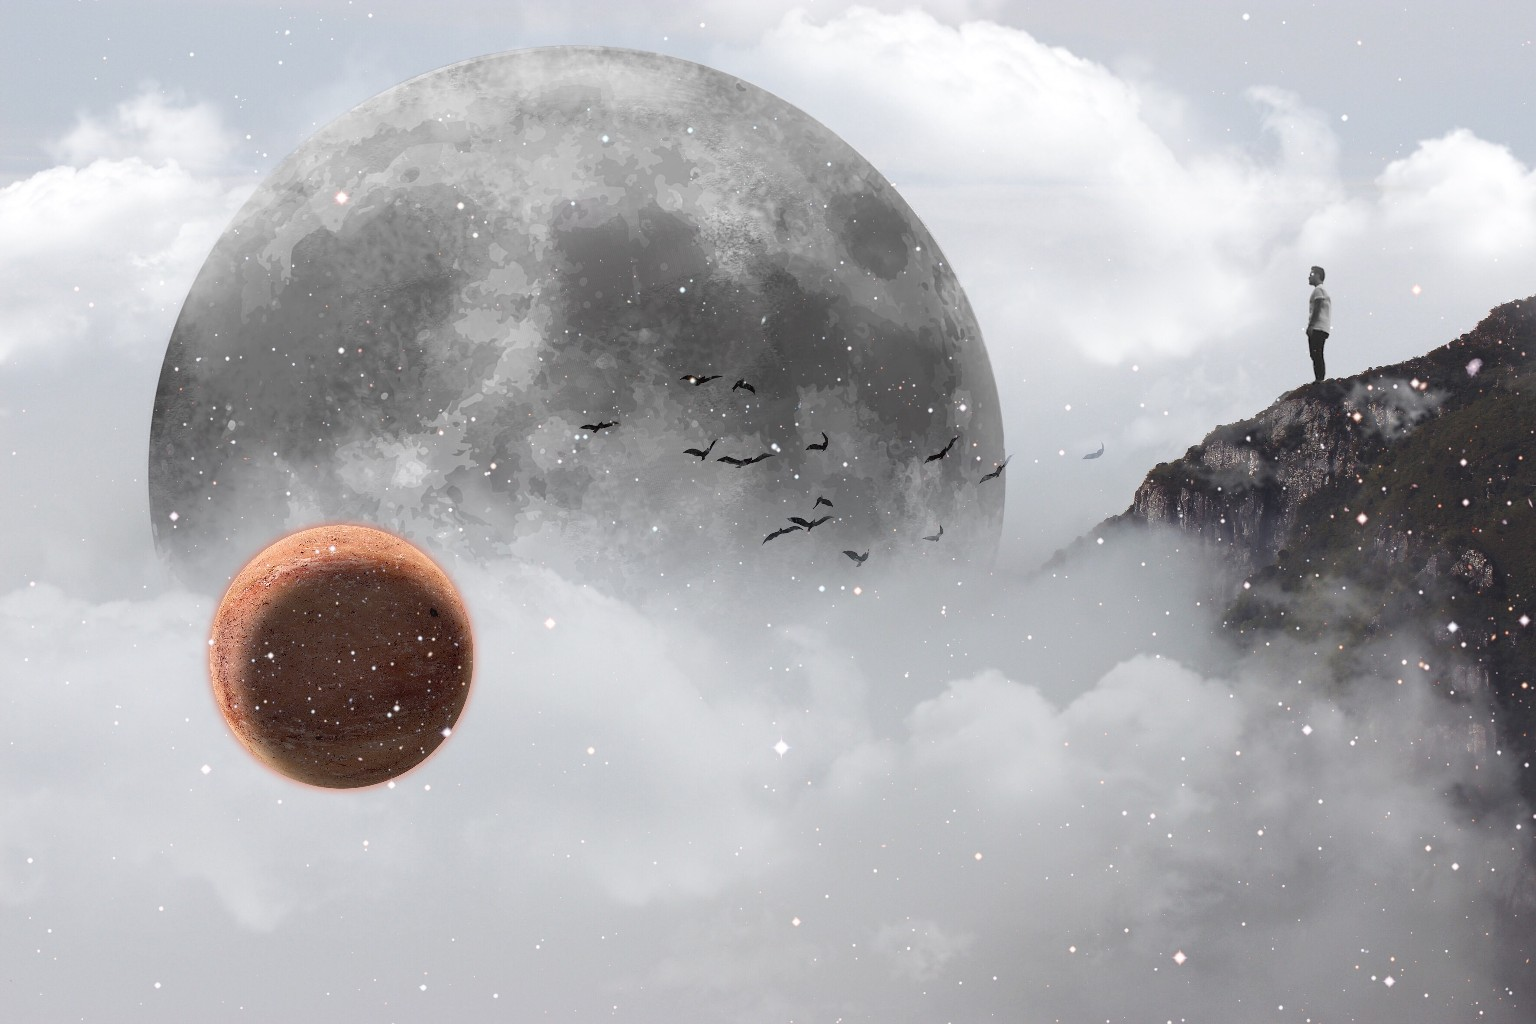 Dreamscape surreal moon cloulds mist clipart edited.